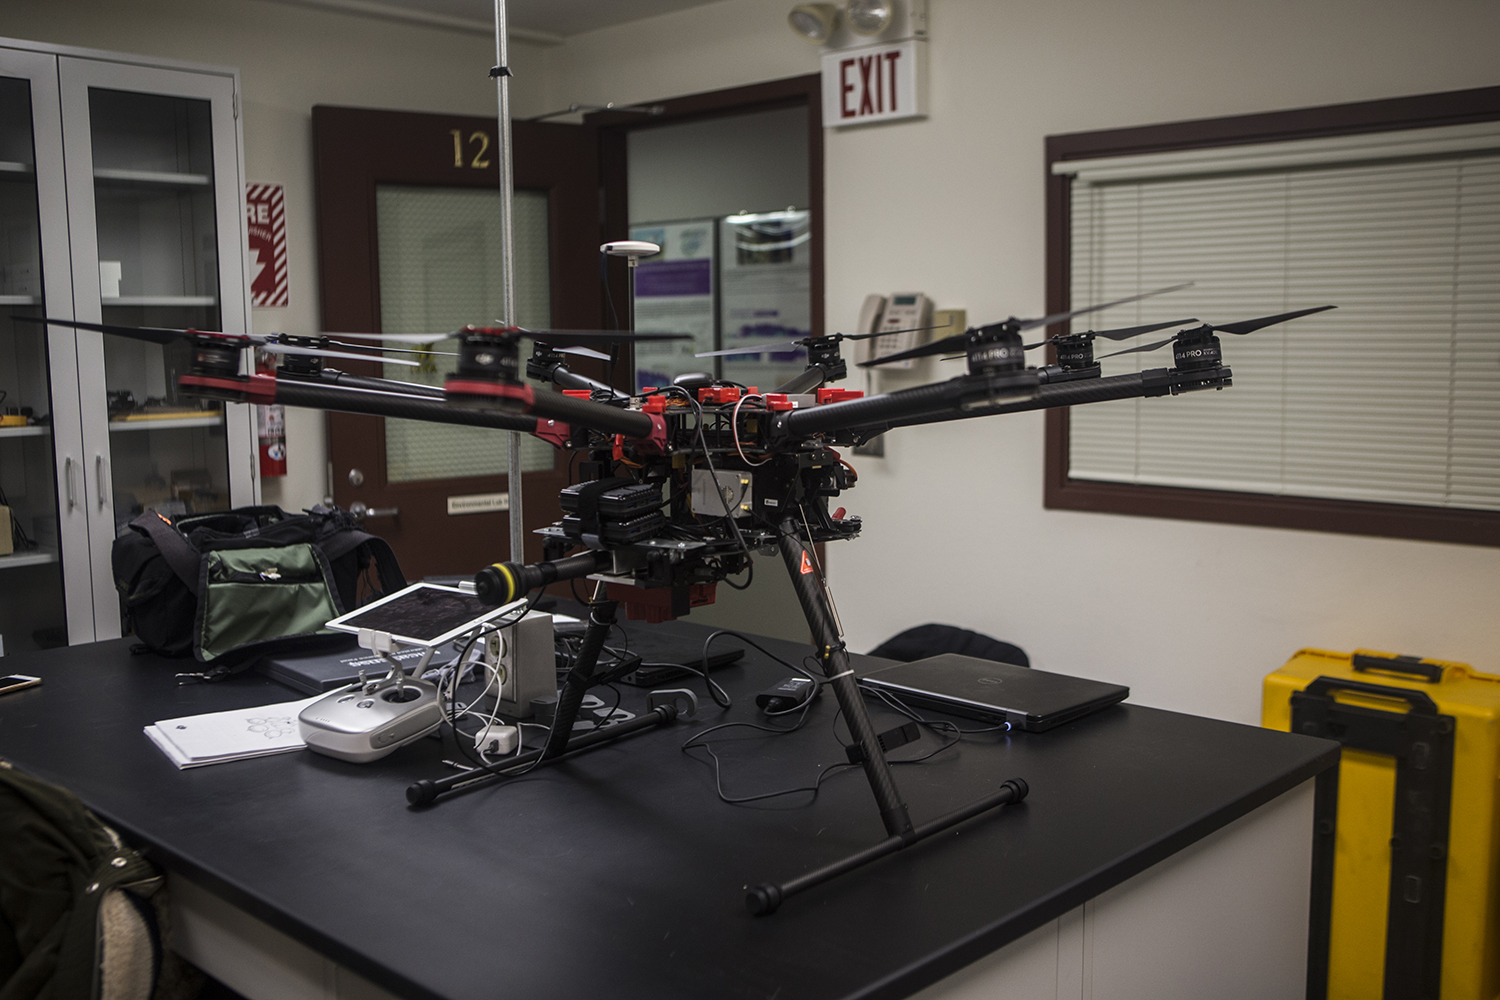 Drone seen in environmental sciences lab on the University of Iowa Campus on Monday, January 14, 2019. Graduate student Sarah Douglas will use the drone to conduct research on algae in Iowa.